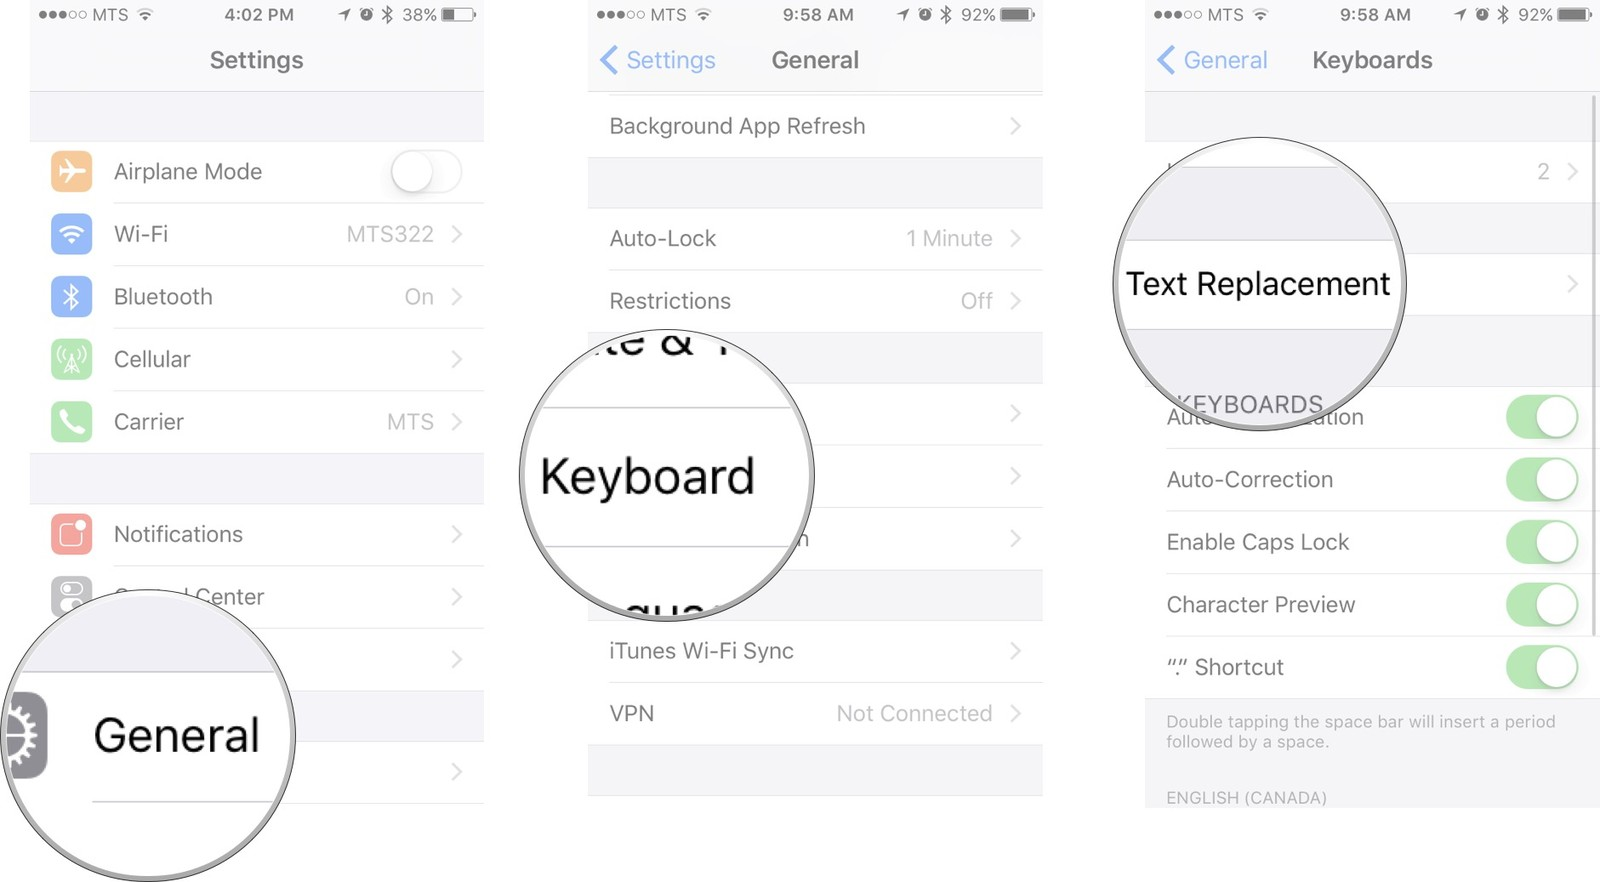 Launch settings app, tap on General, tap on Keyboard, and then tap on Text Replacement button.